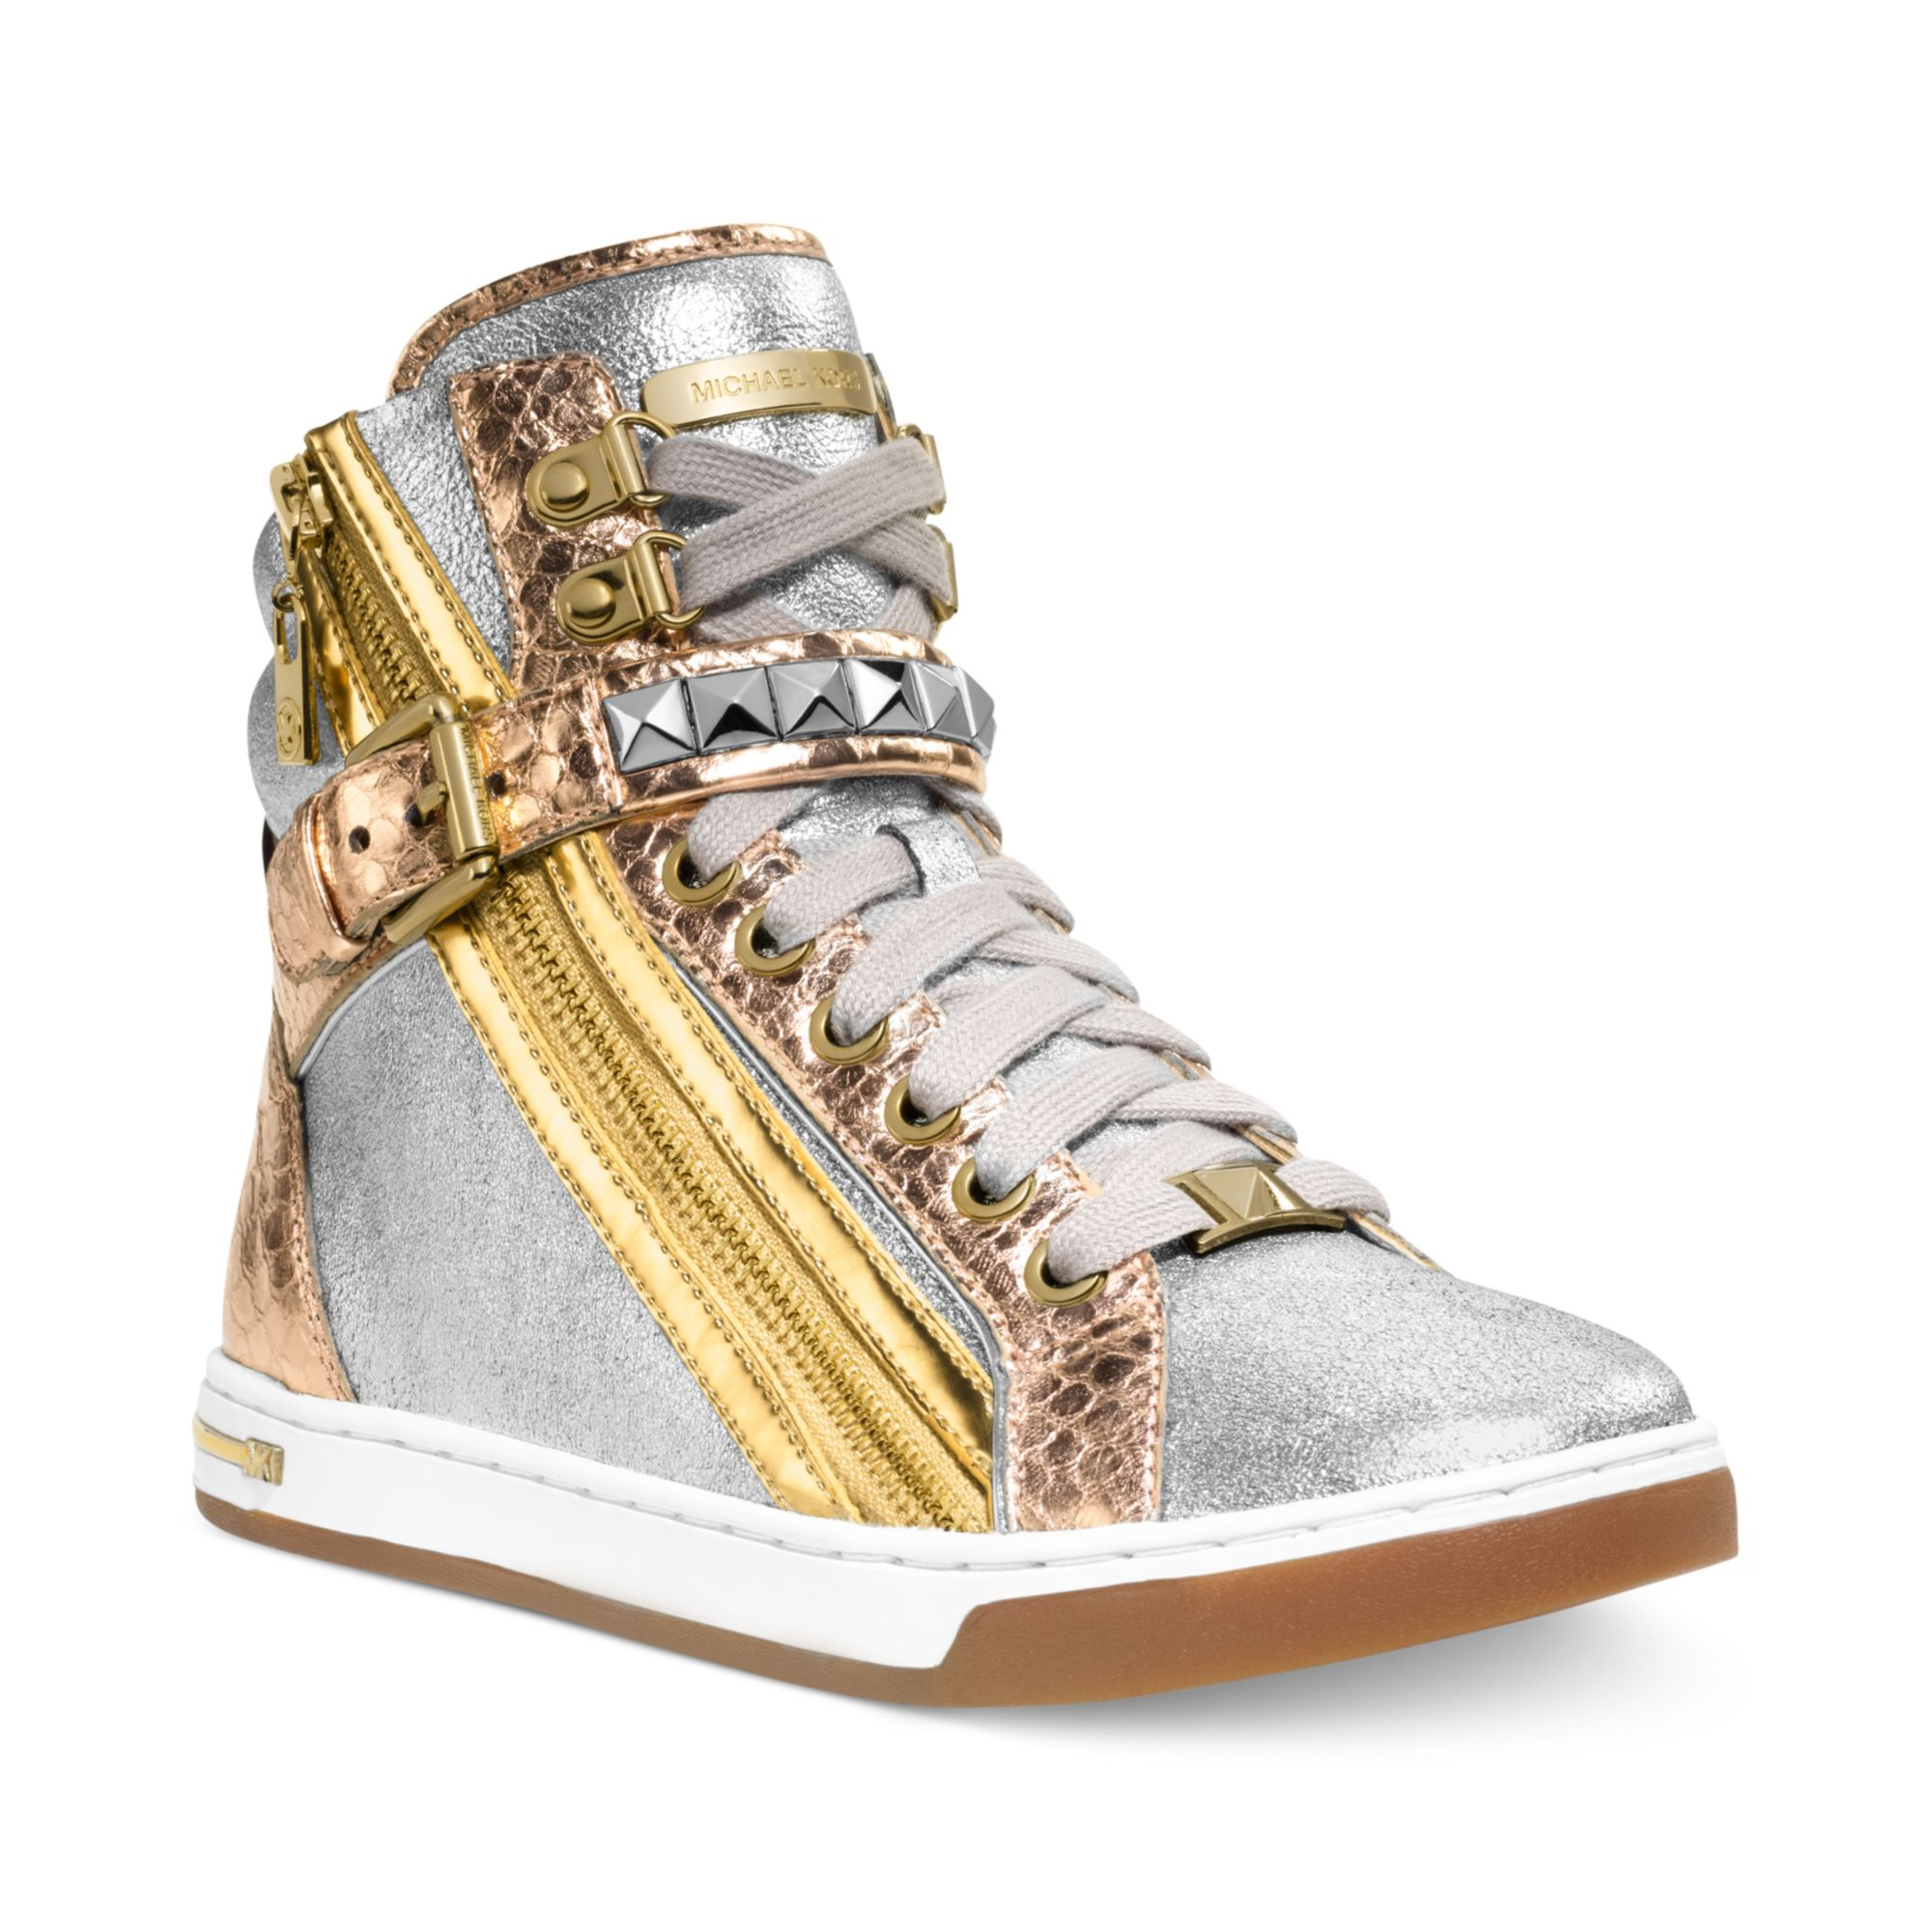 michael kors glam studded high top sneakers in pink rose. Black Bedroom Furniture Sets. Home Design Ideas